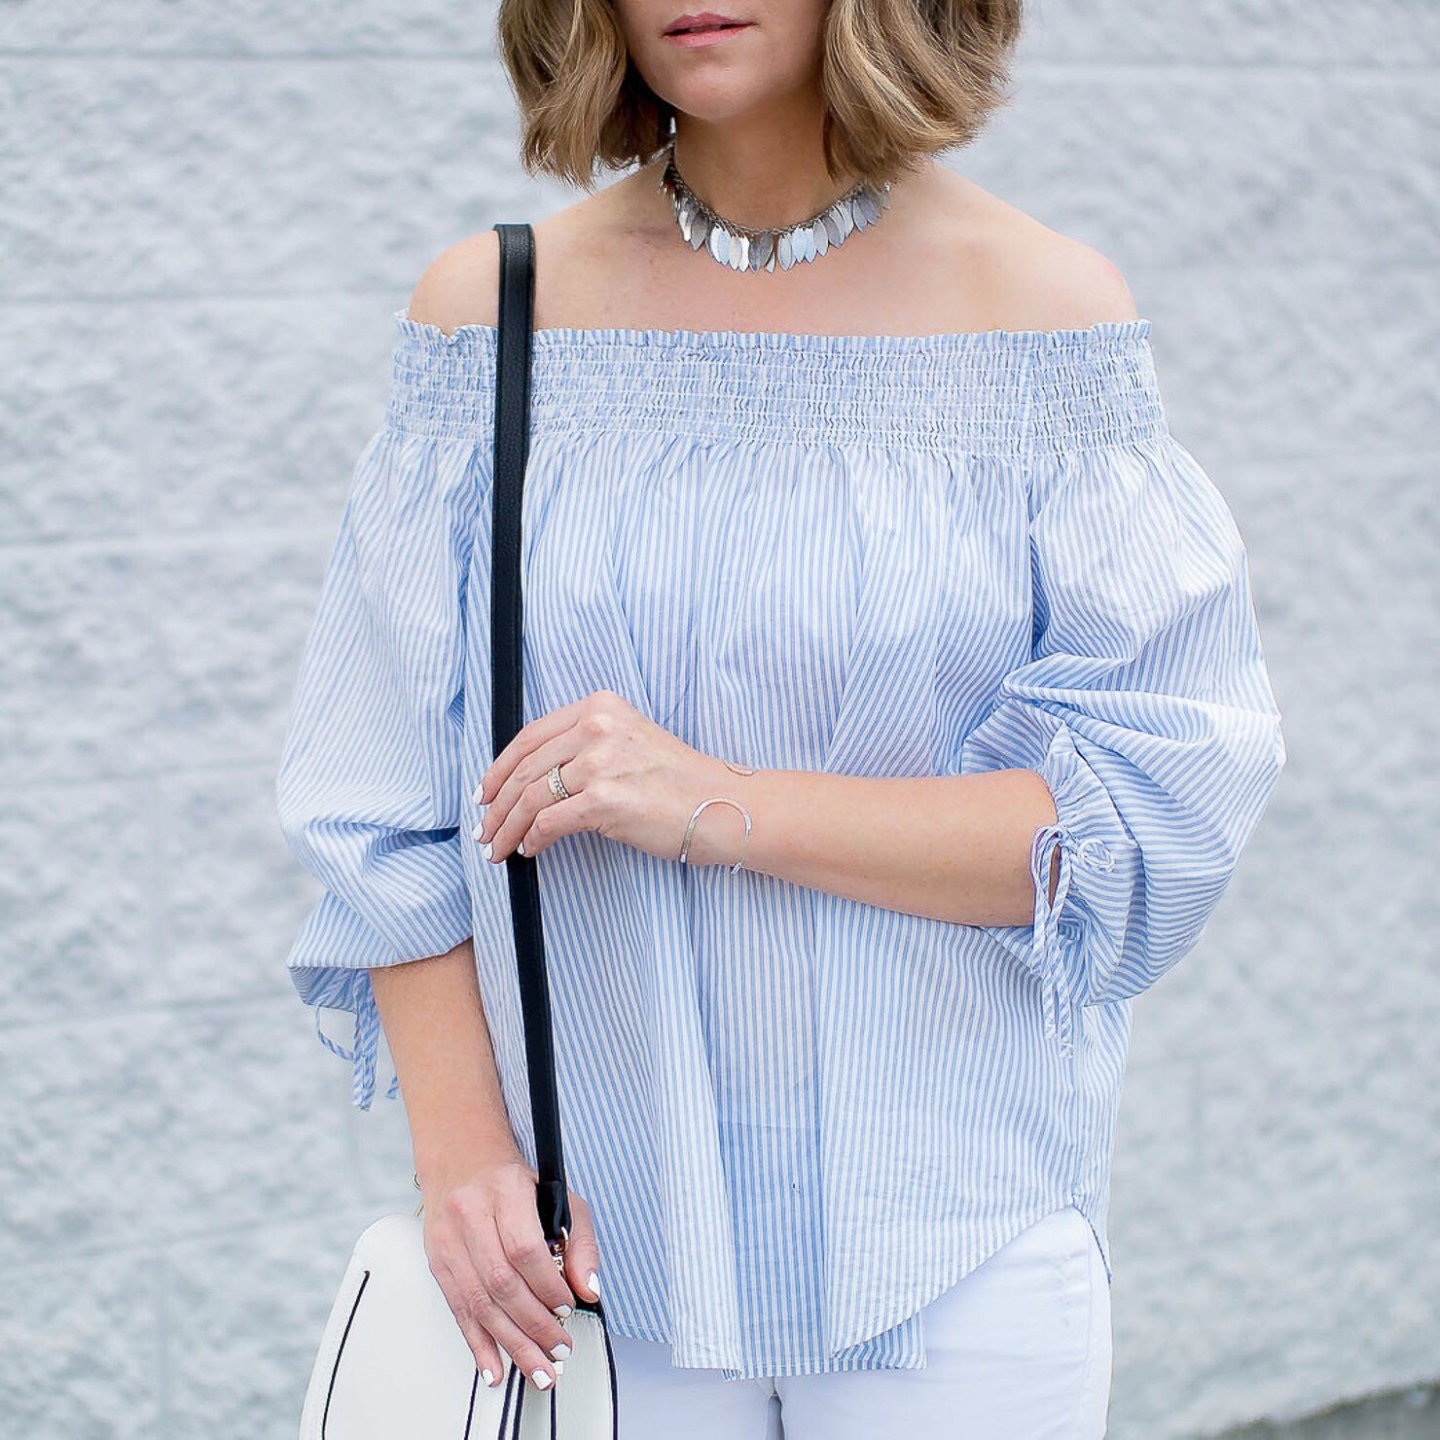 off-the-shoulder-striped-blouse-silver-choker-uncommon-good-hammered-cuff-wishes-and-reality-instagram